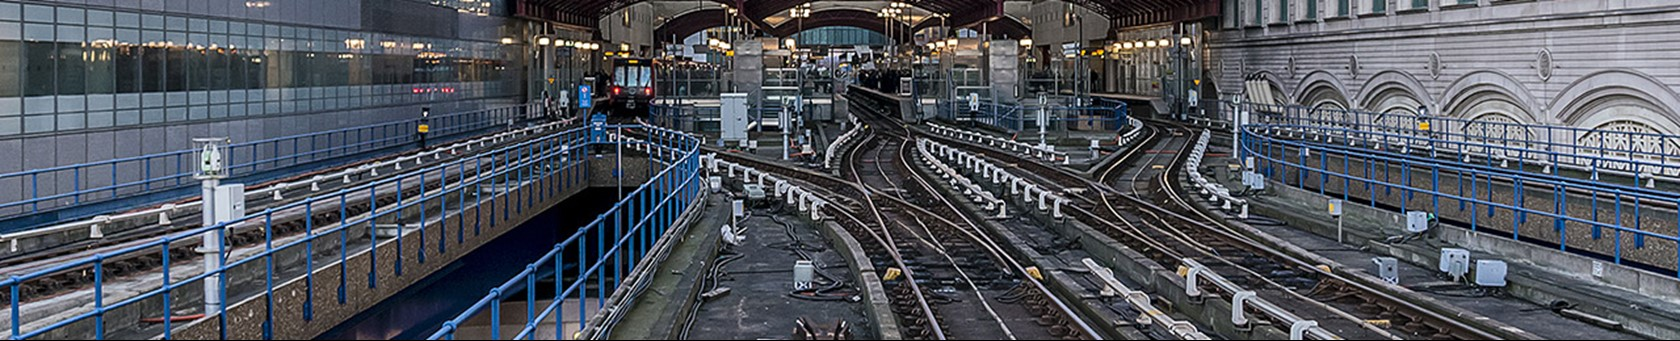 london_train_stations.jpg